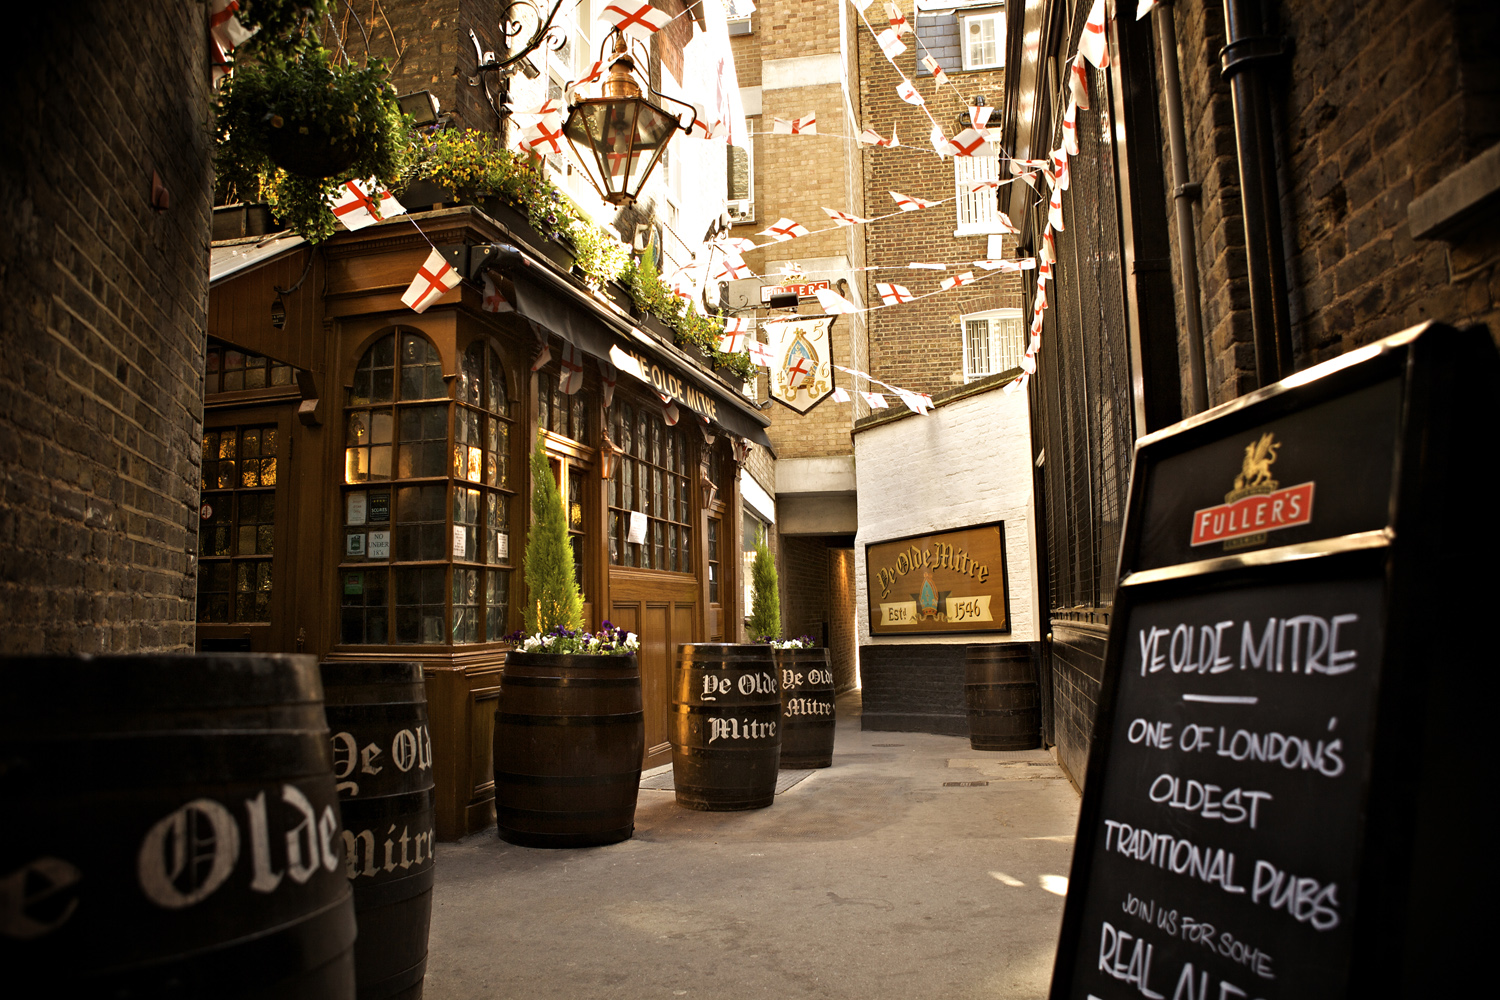 London\'s oldest pubs: 10 of the best | CNN Travel